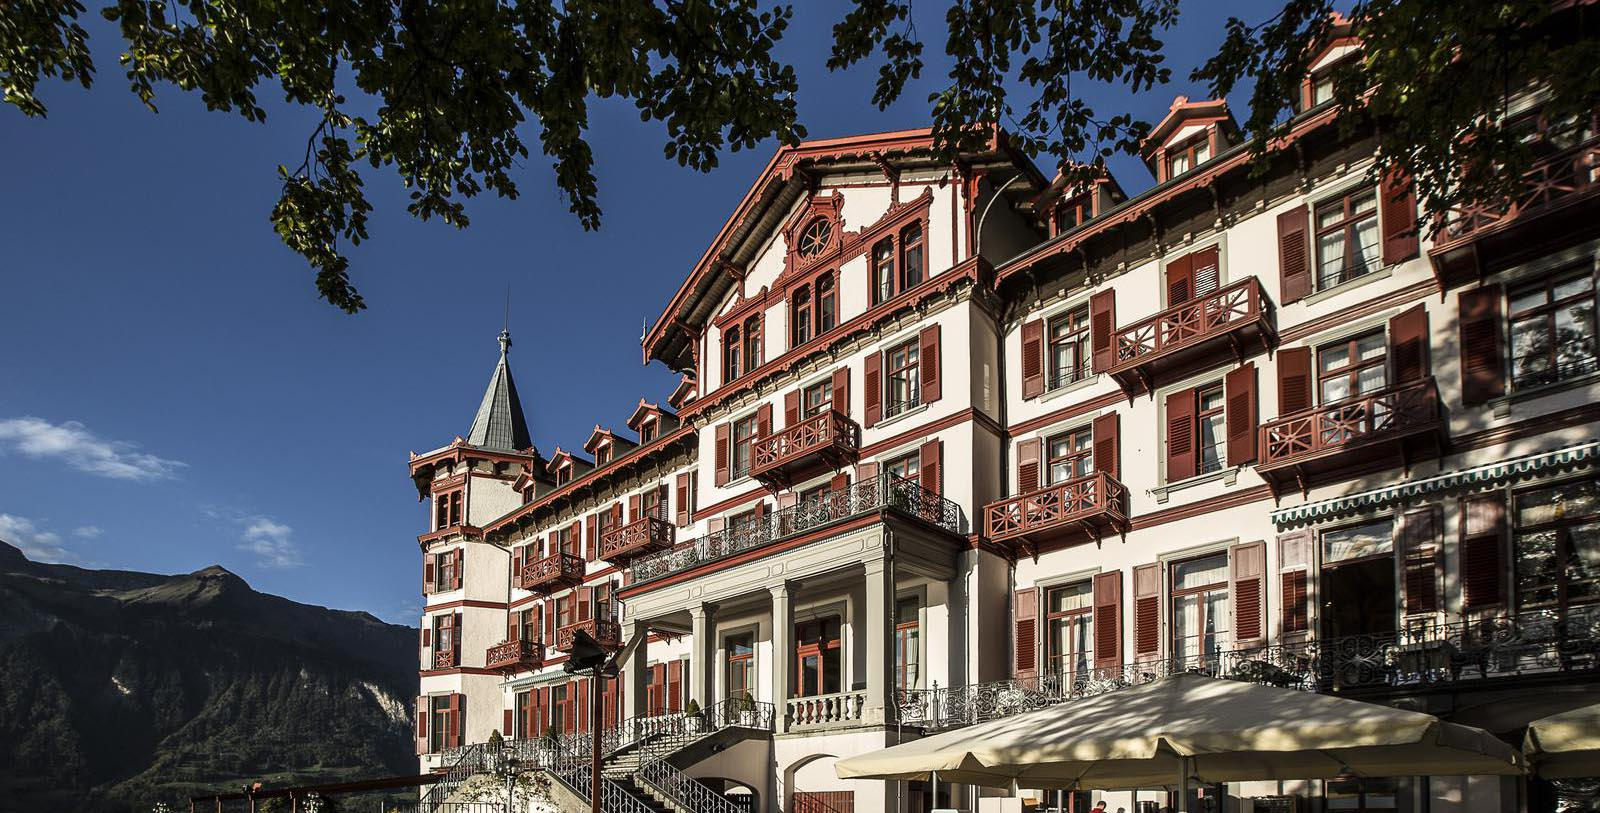 Image of Hotel Exterior, Grandhotel Giessbach, Brienz, Switzerland, 1822, Member of Historic Hotels Worldwide, Special Offers, Discounted Rates, Families, Romantic Escape, Honeymoons, Anniversaries, Reunions